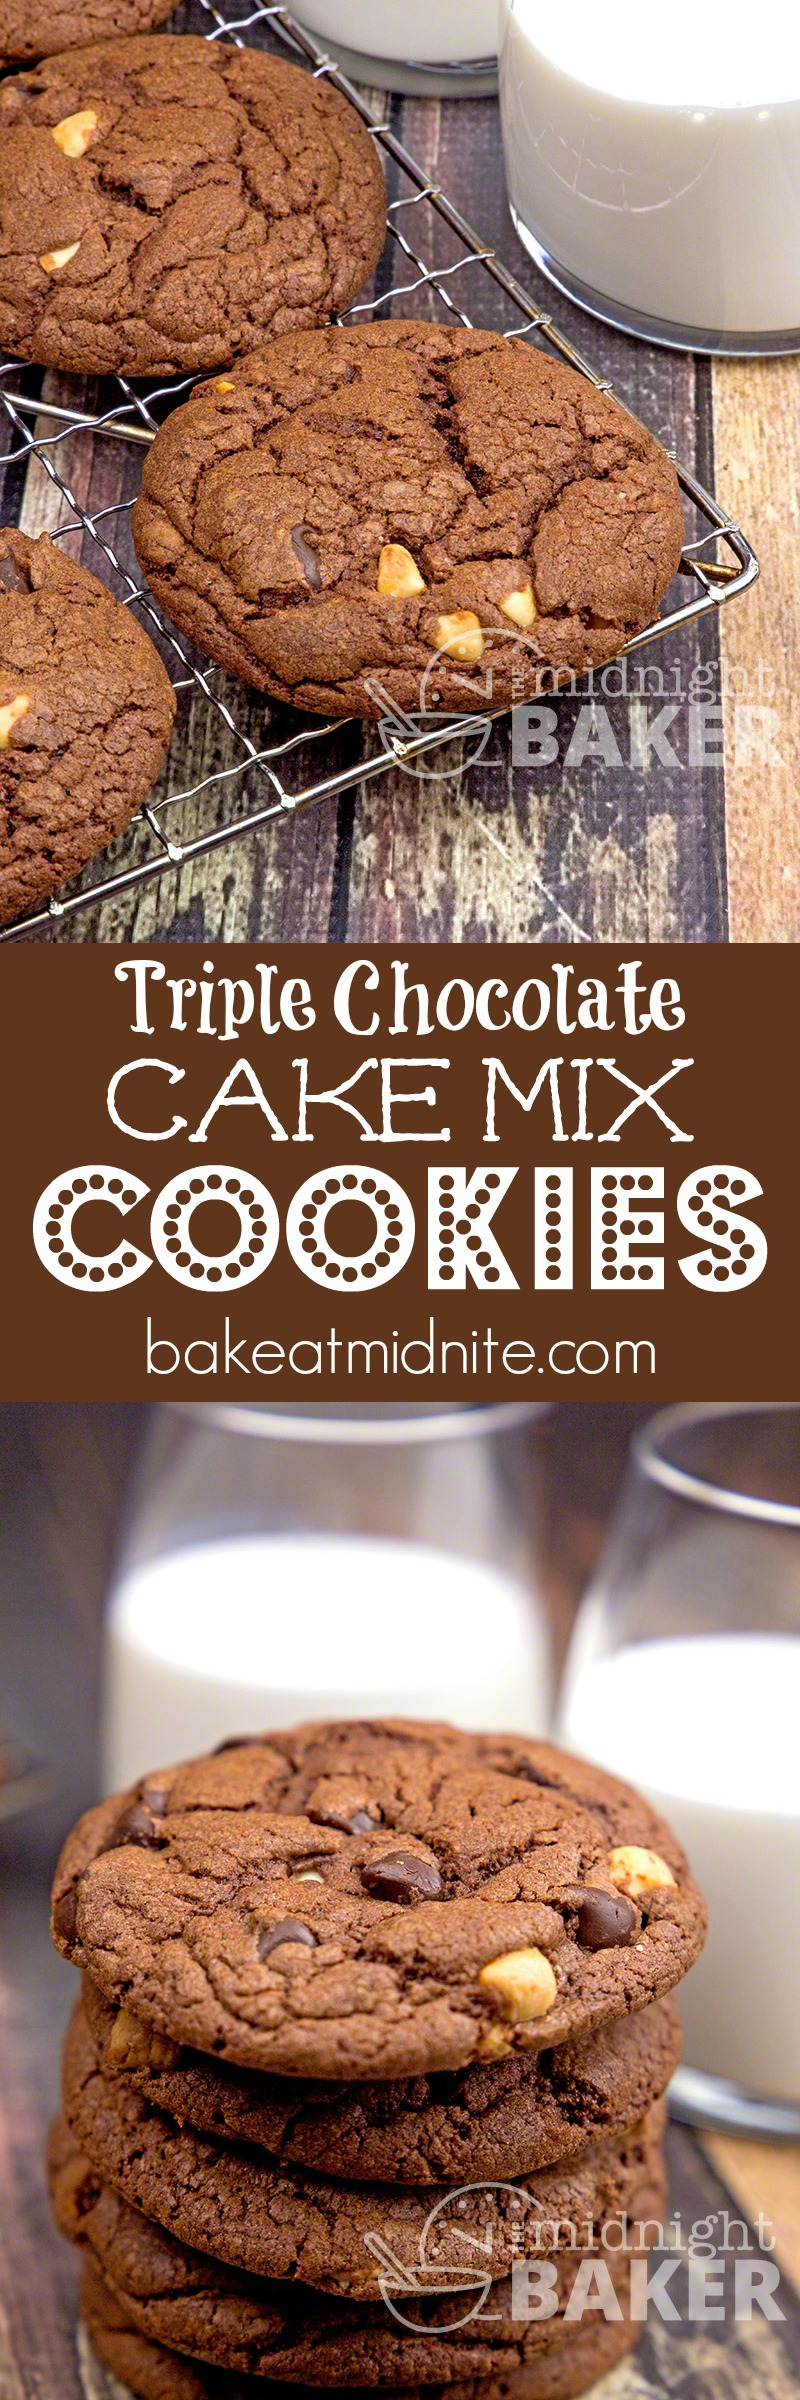 Triple Chocolate Cake Mix Cookies - The Midnight Baker